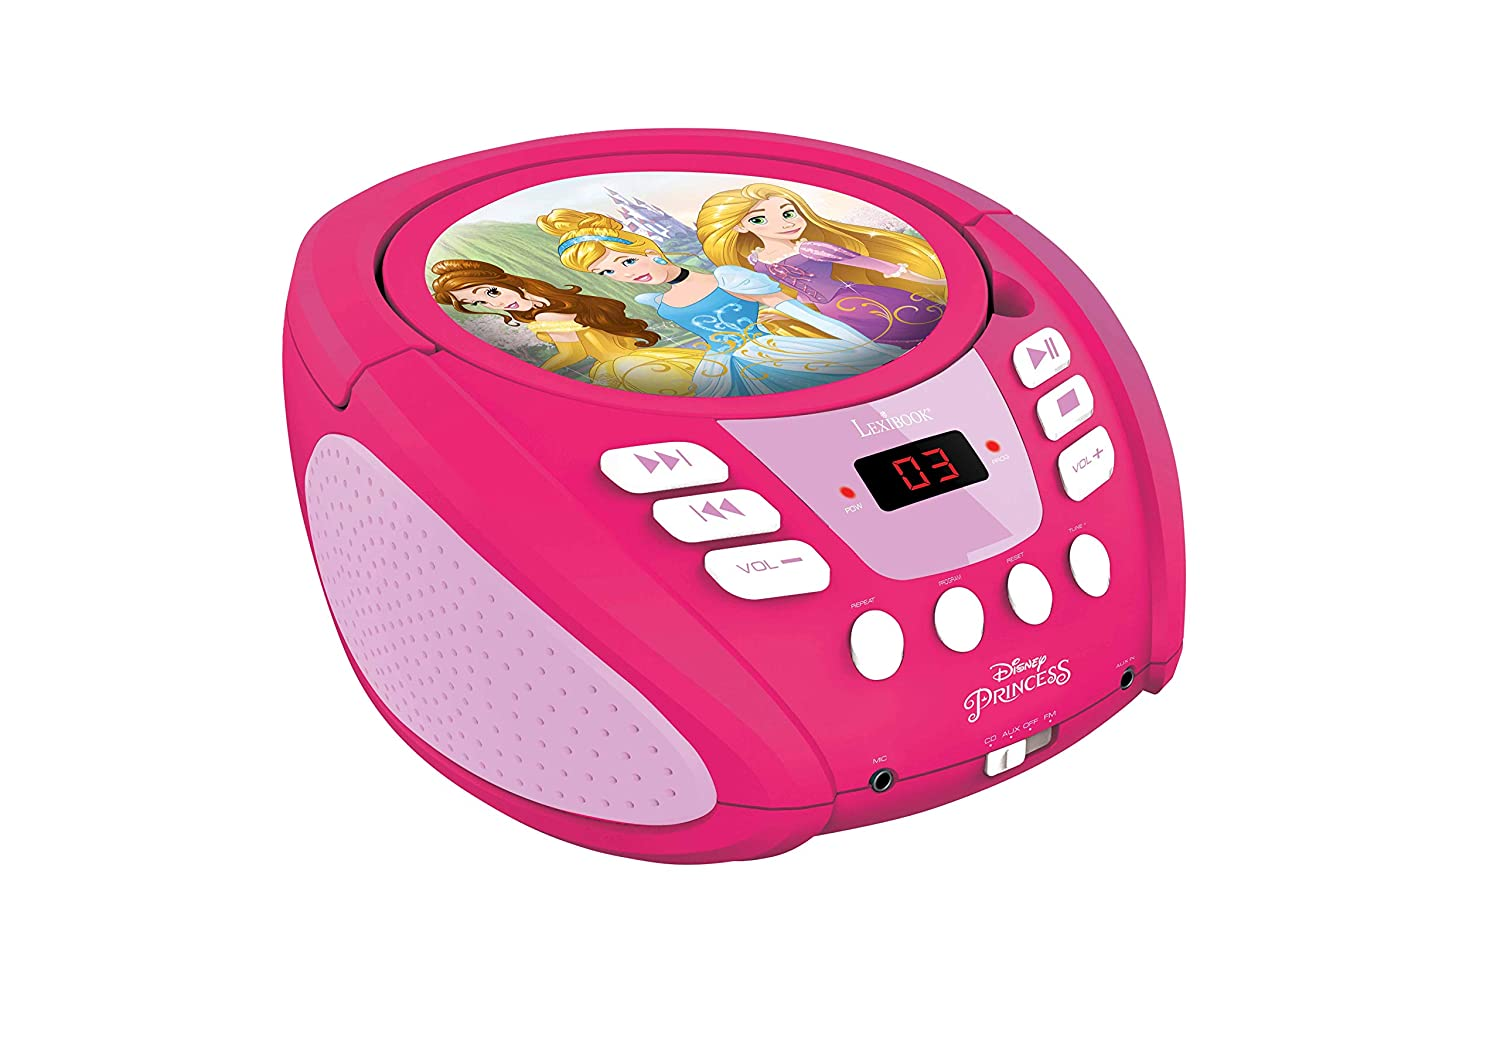 Lexibook Disney Princess Radio CD player, aux-in jack, AC or  battery-operated, Pink/White, RCD108DP_10